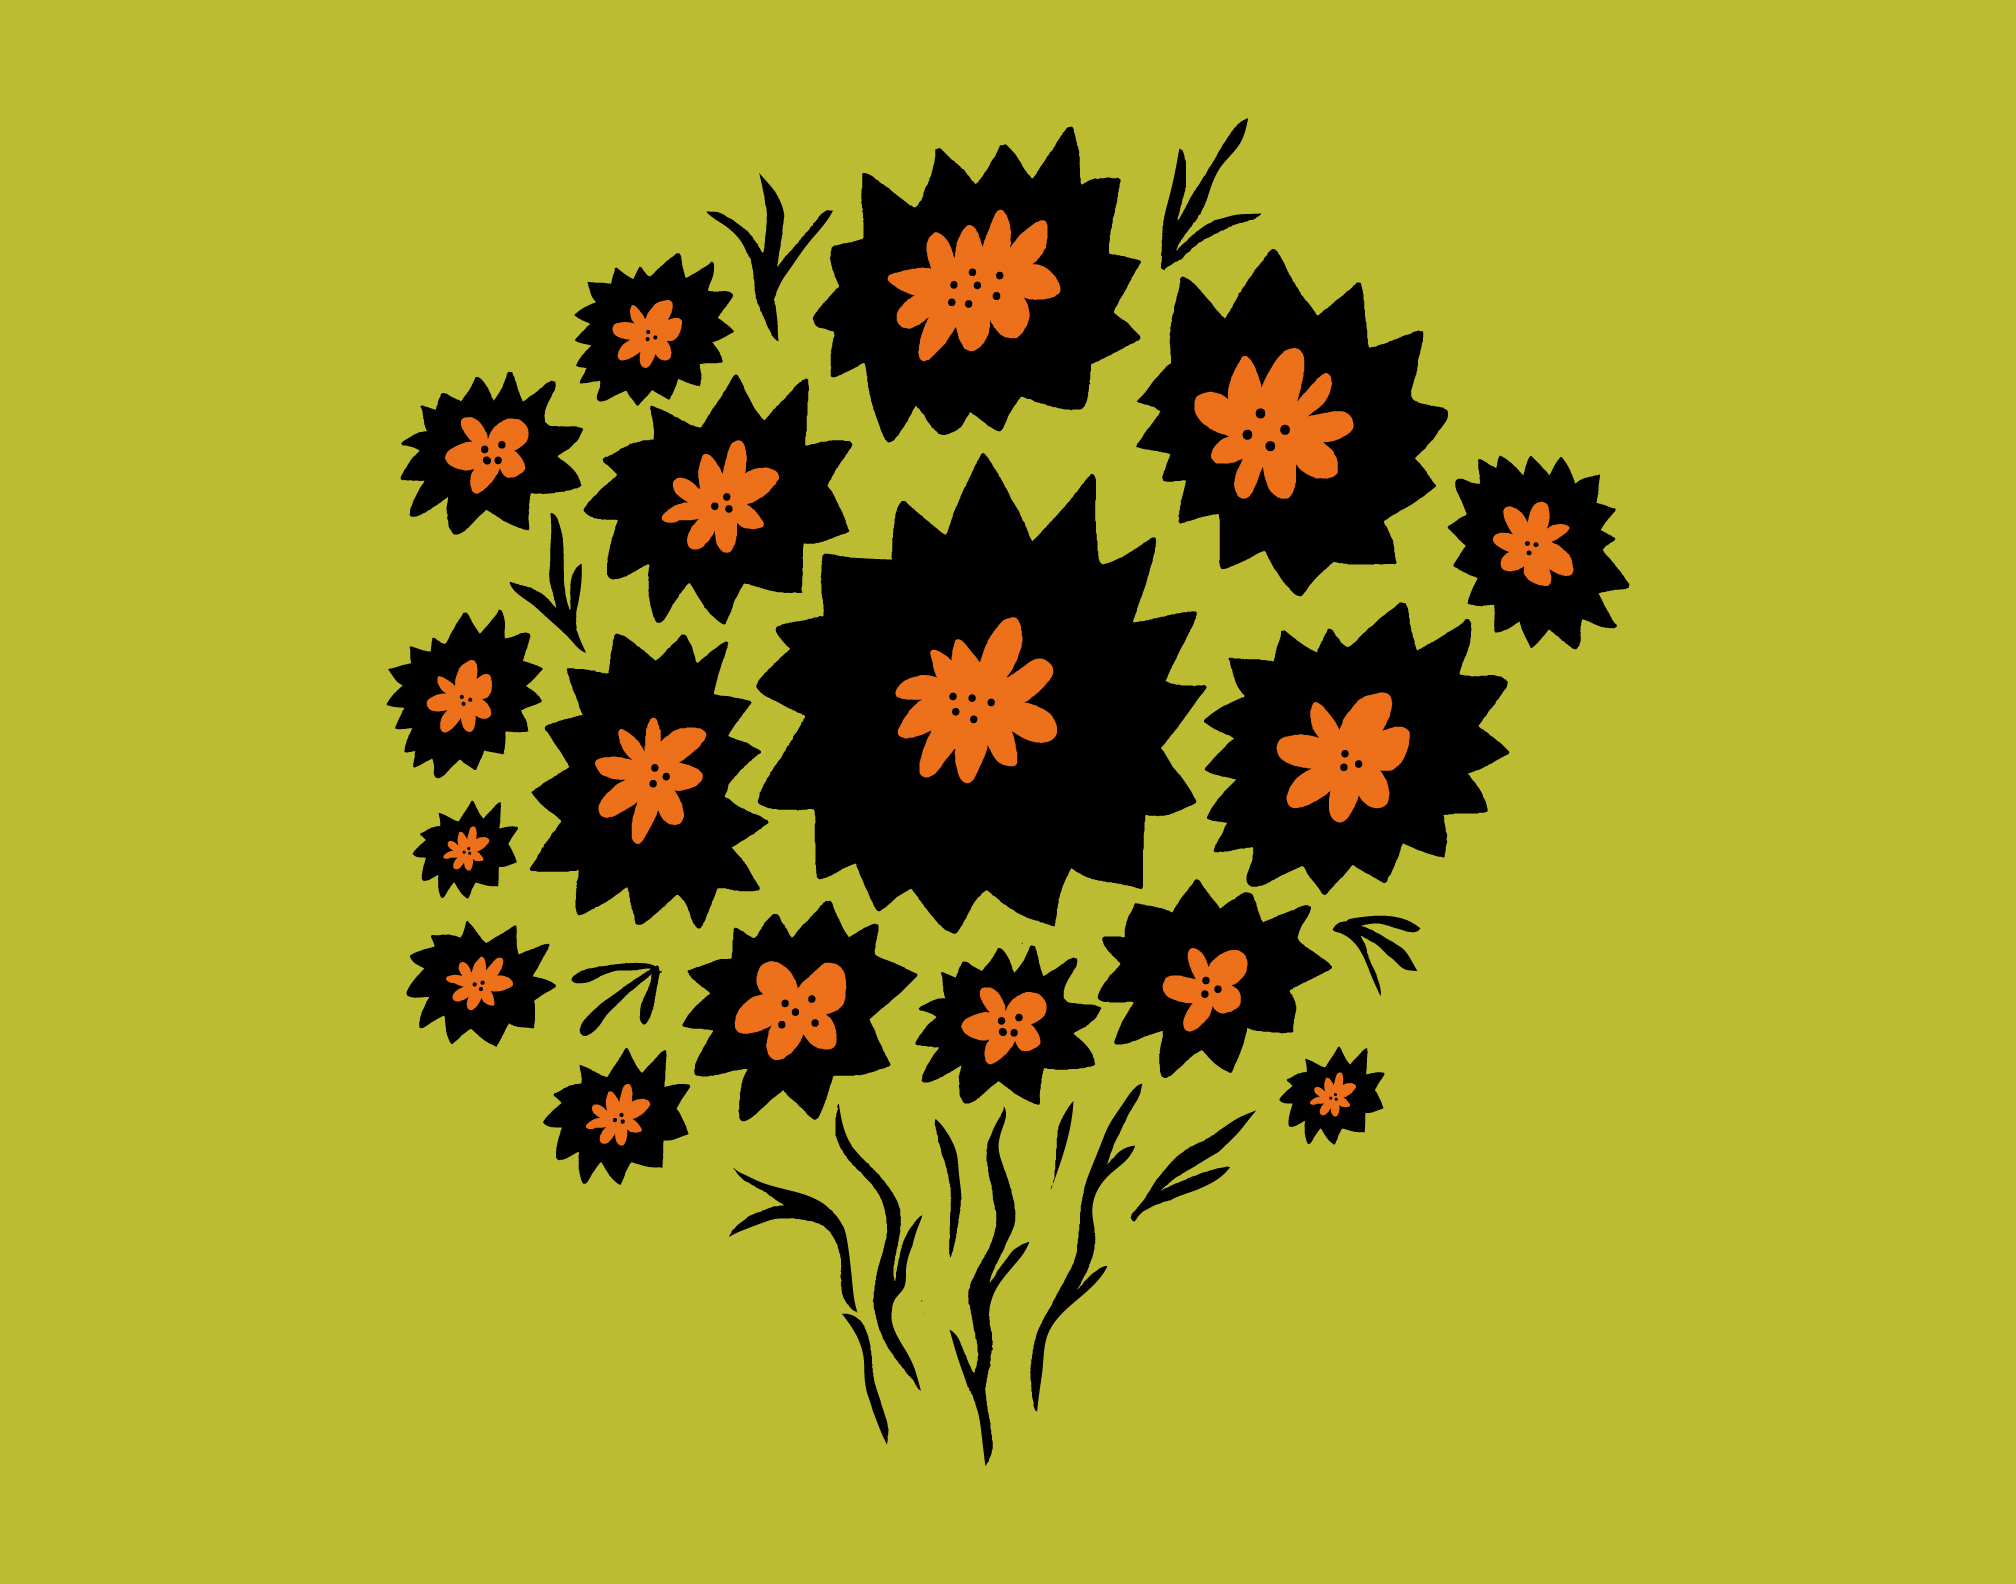 Thistle Flower Bunch Download Free Vector Art Stock Graphics Images